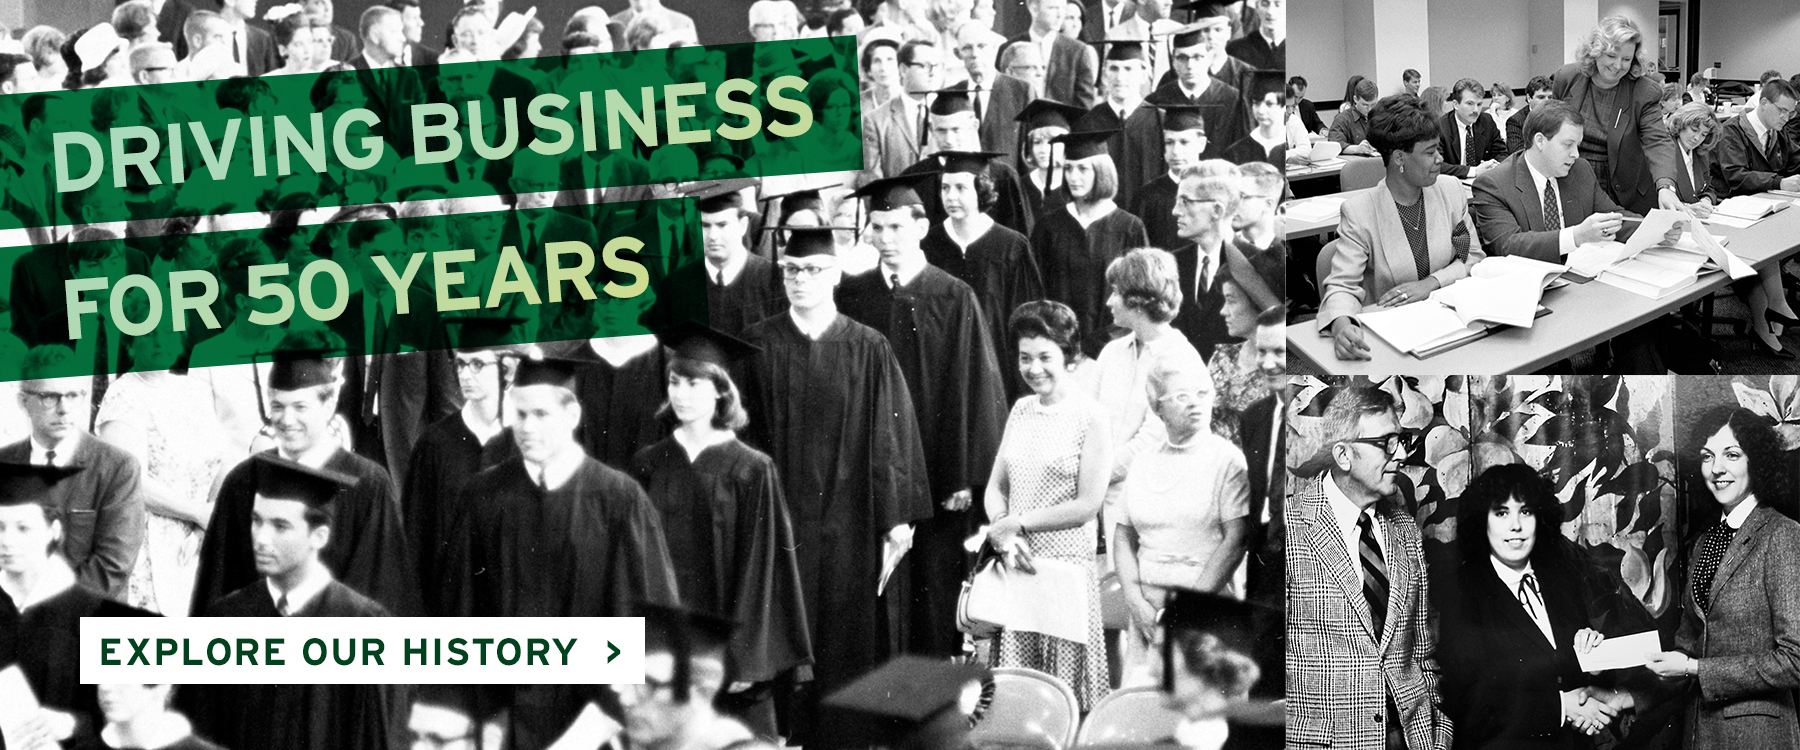 Driving Business for 50 Years